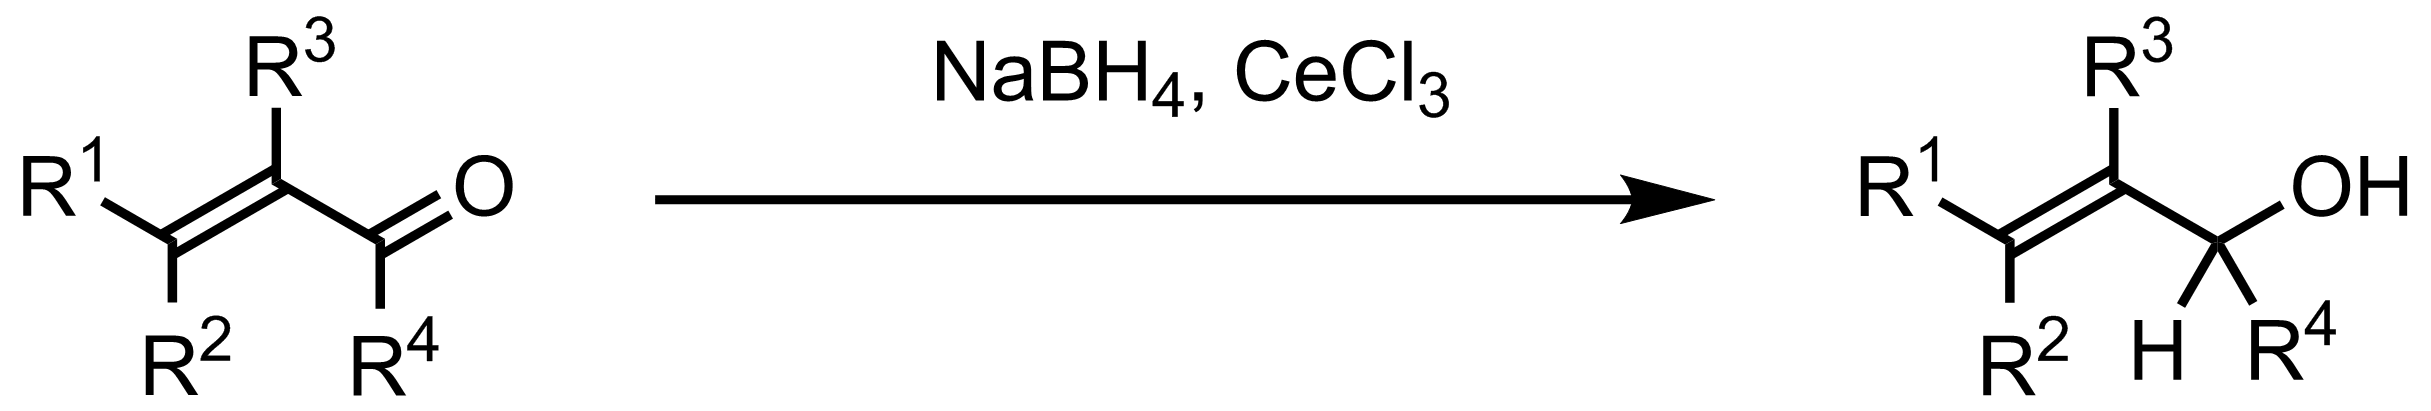 Schematic representation of the Luche Reduction.